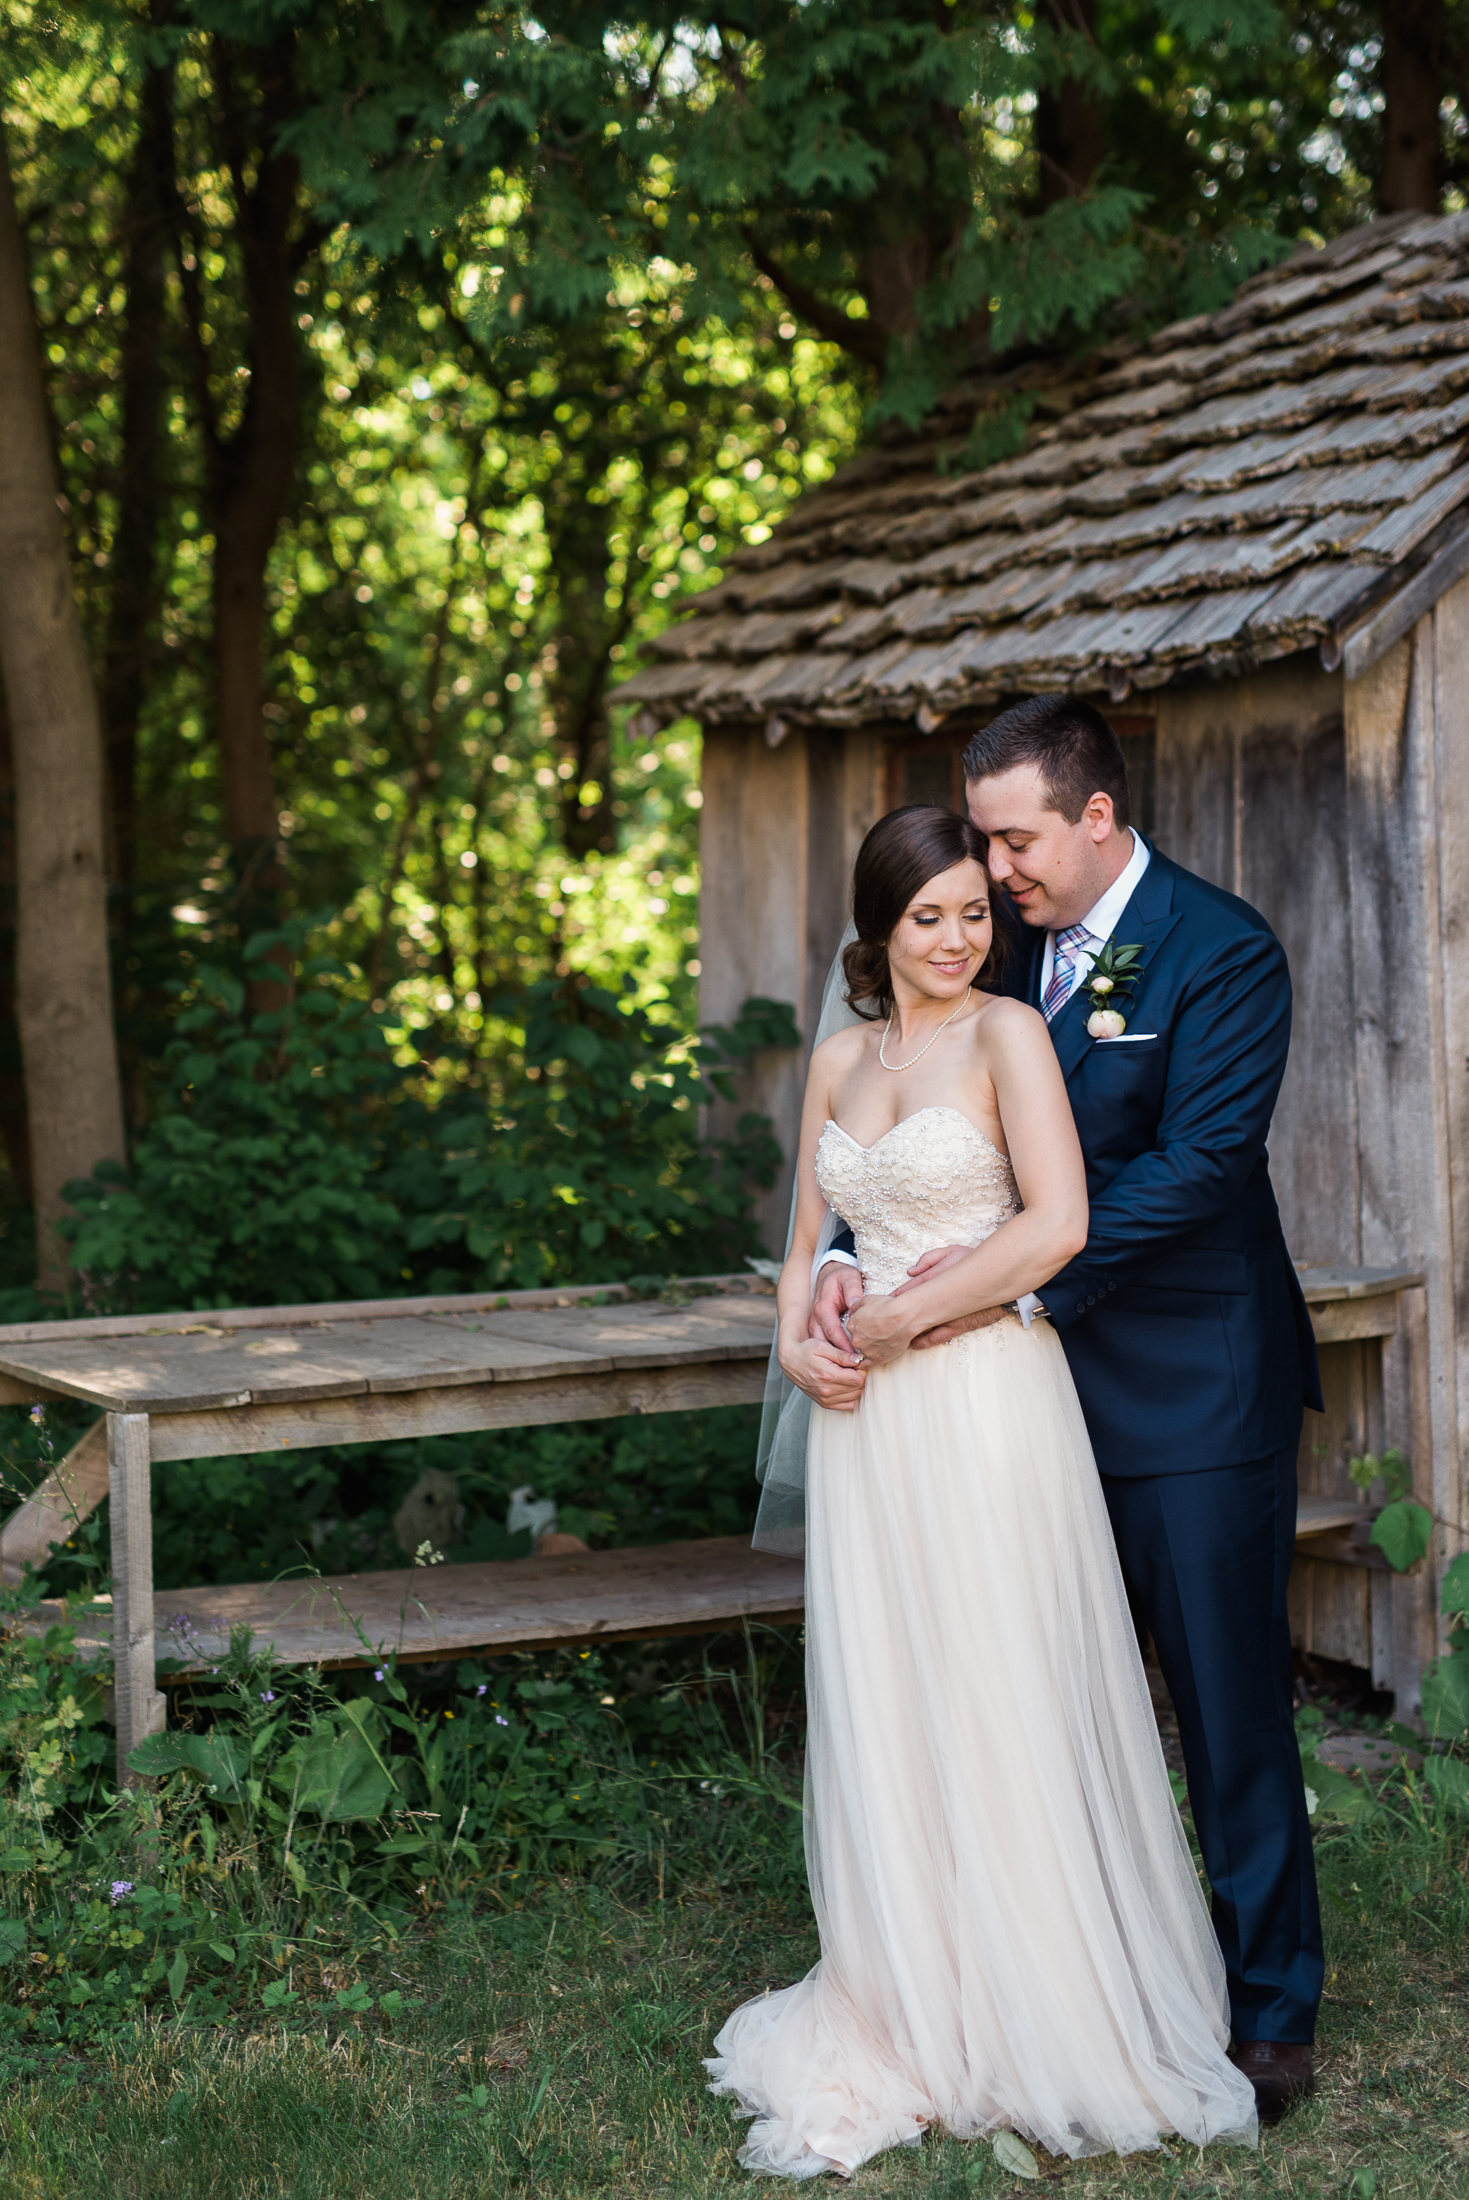 pickering_lakehouse_wedding_durham_region159